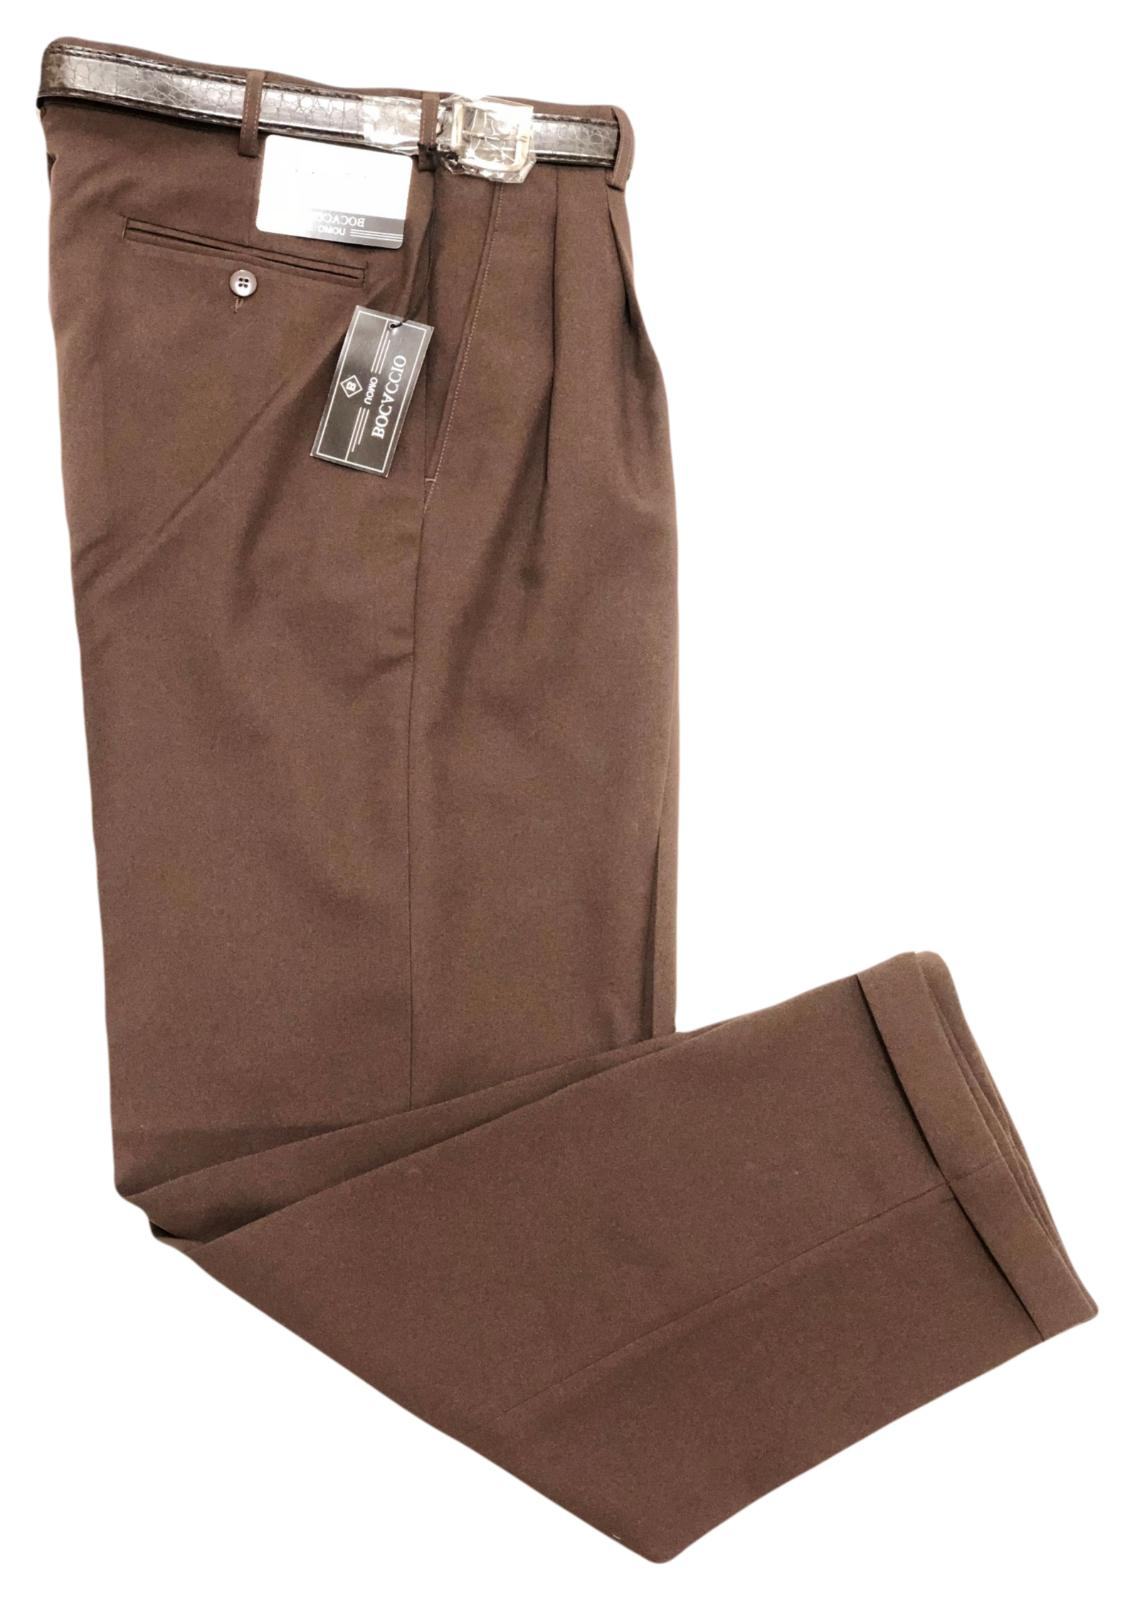 Big and Tall Mens Pants Pleated - Size 44 70